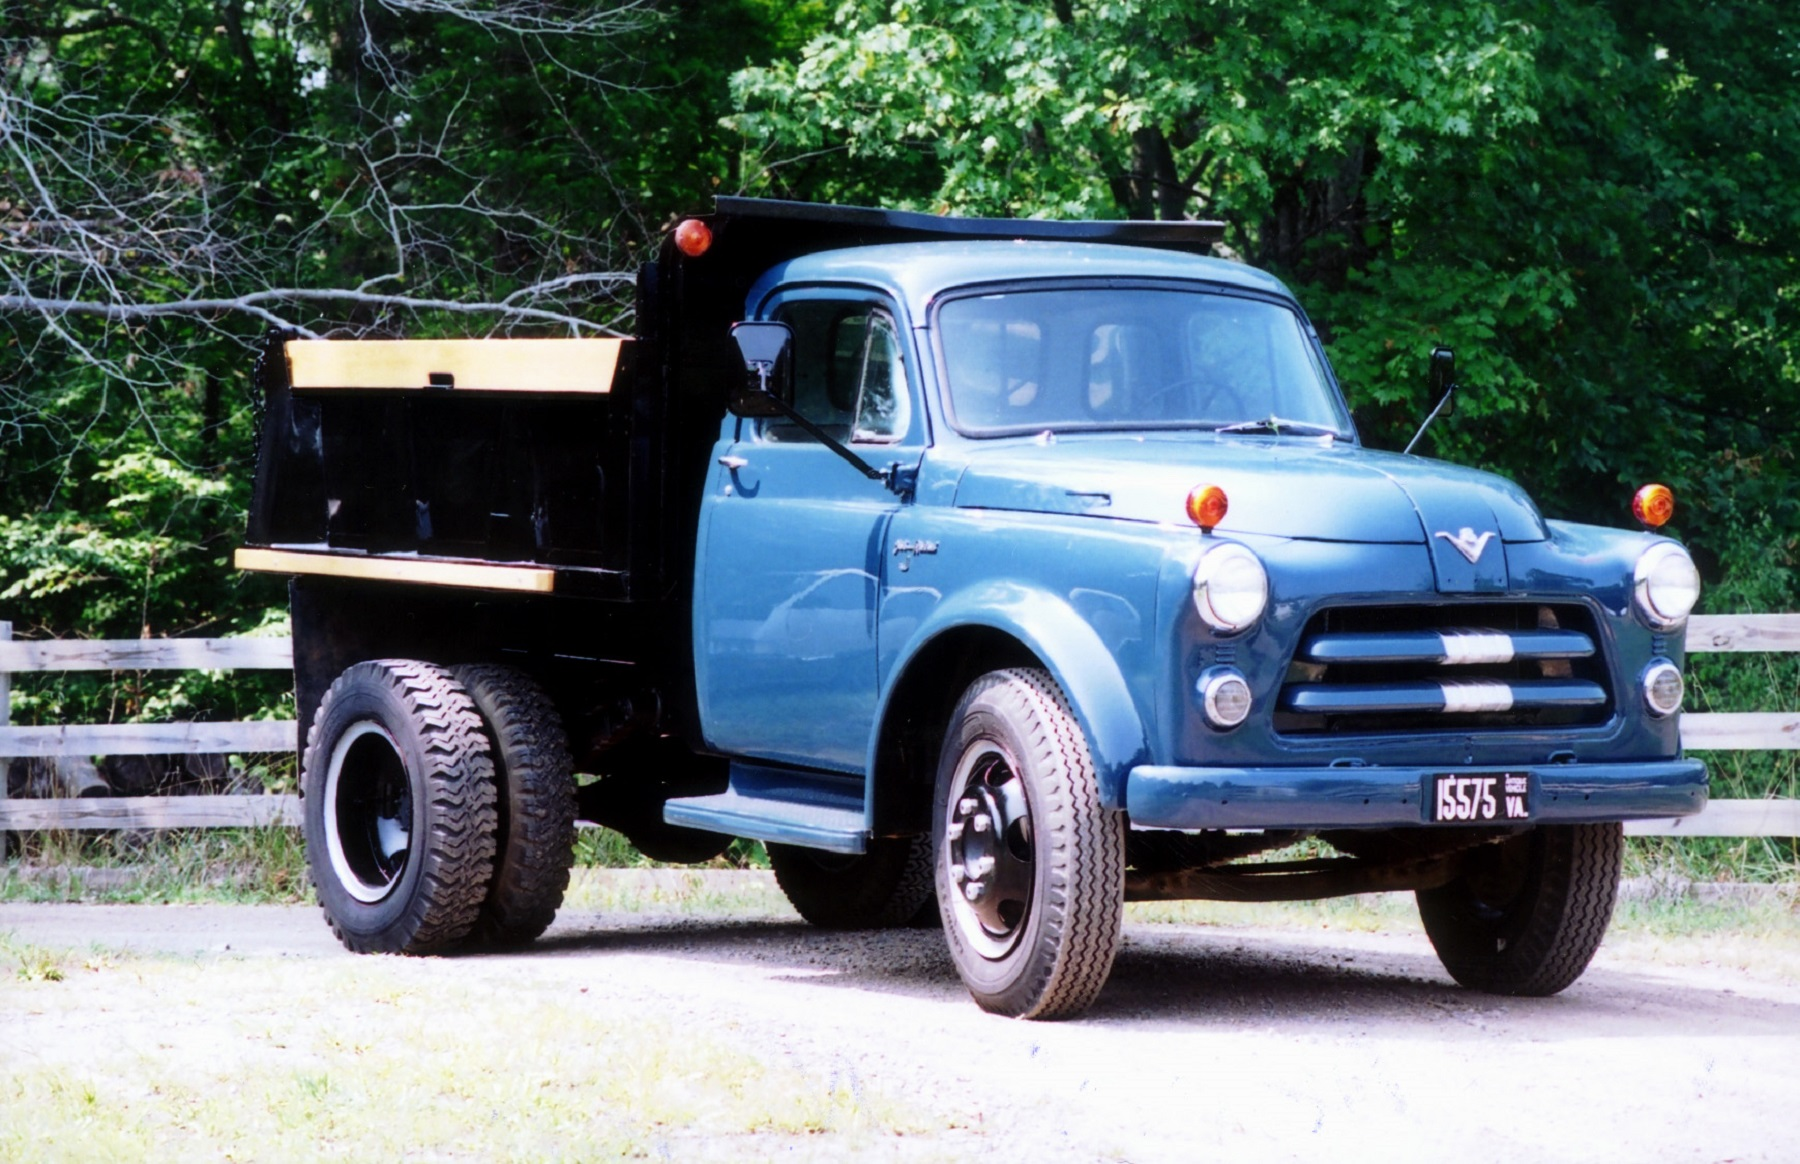 1954 Dodge Equipped With Desirable Hemi V 8 Classic Classics Ford Dump Truck Johnson Recalls The Day He Watched Delivery Of A Brand New To Neighbor Pickup Was Fifth Wheel And